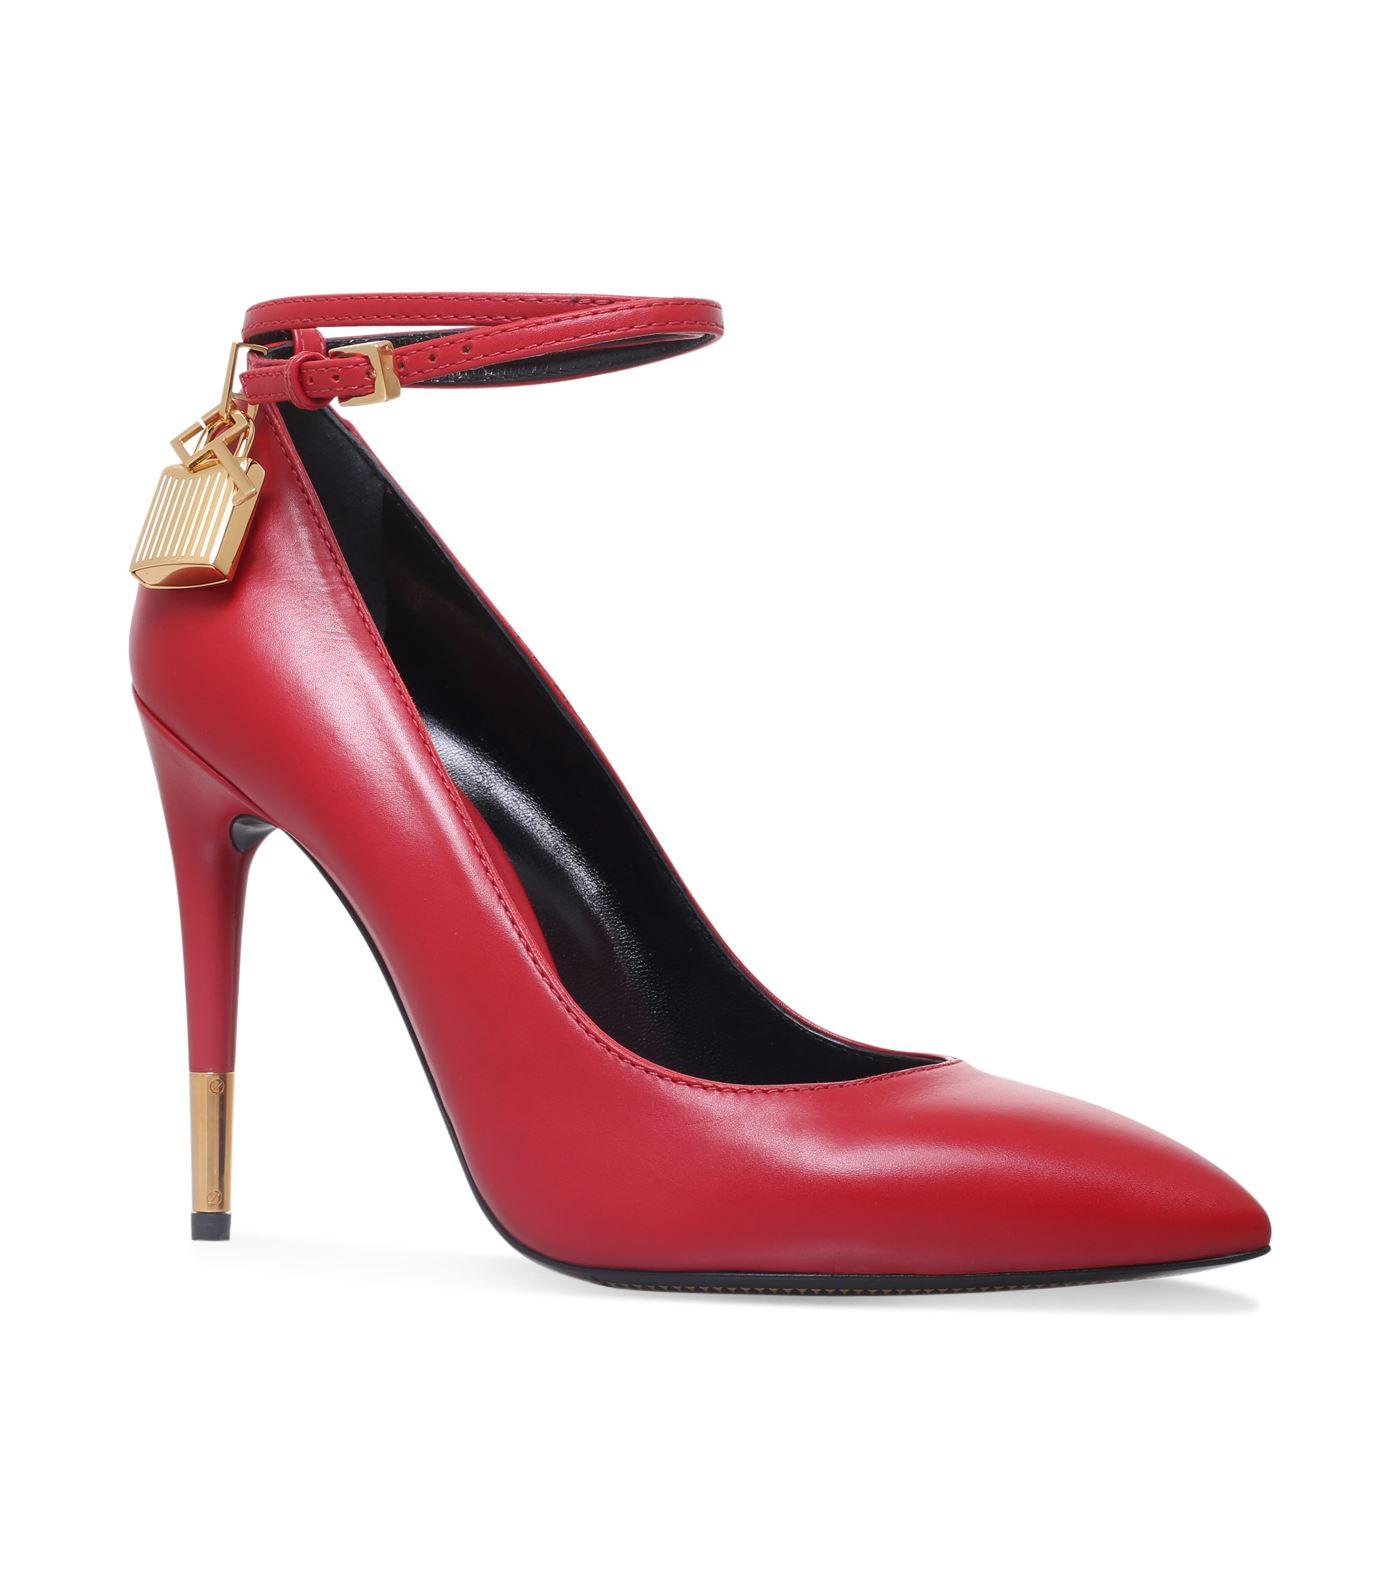 Tom Ford Padlock Pumps 105 In Red